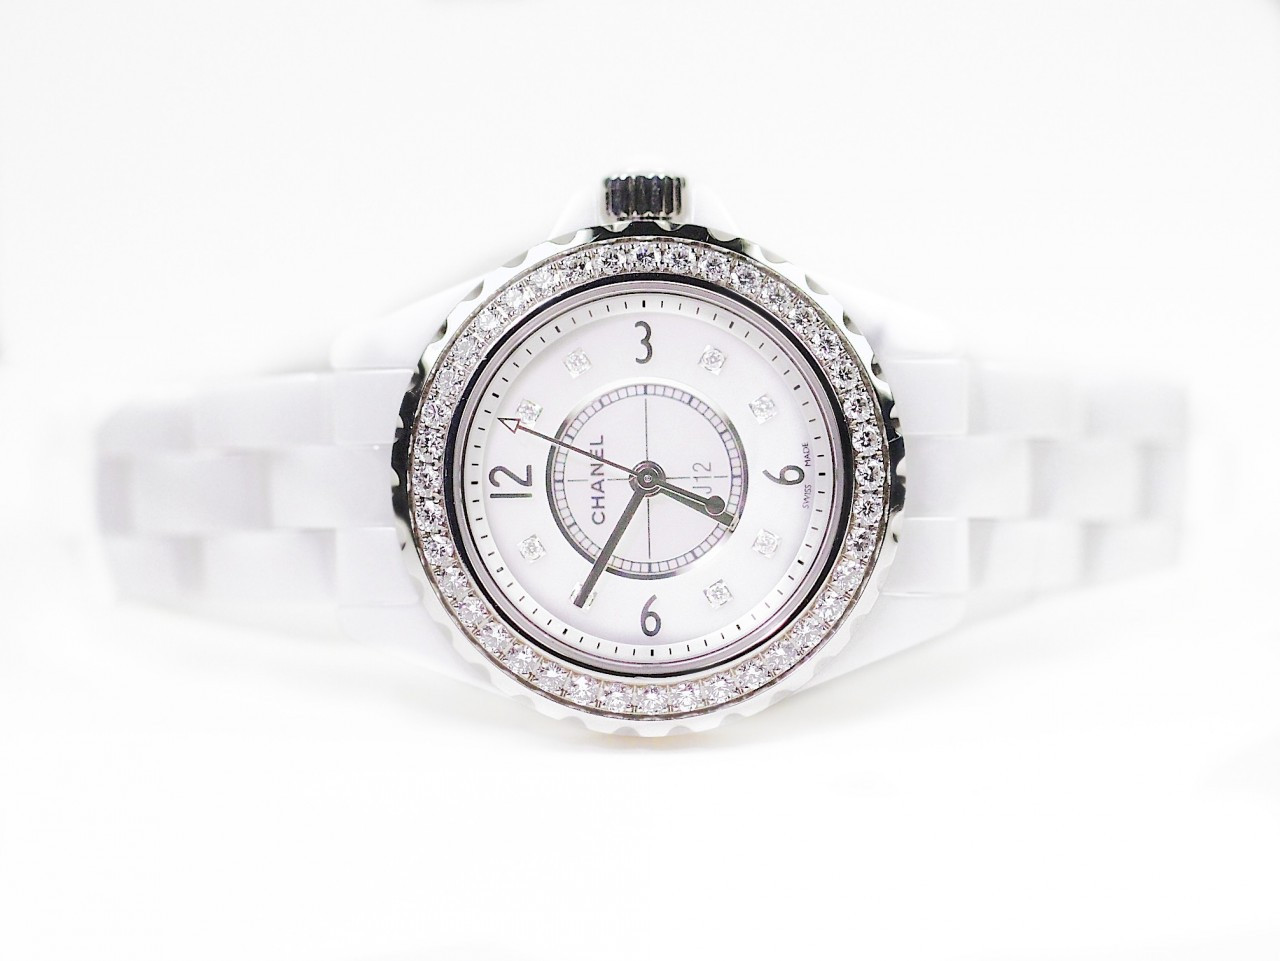 decor en c grey tech crop white chanel high steel rhodium untitled ceramic watches watch and default ca jewelry plated